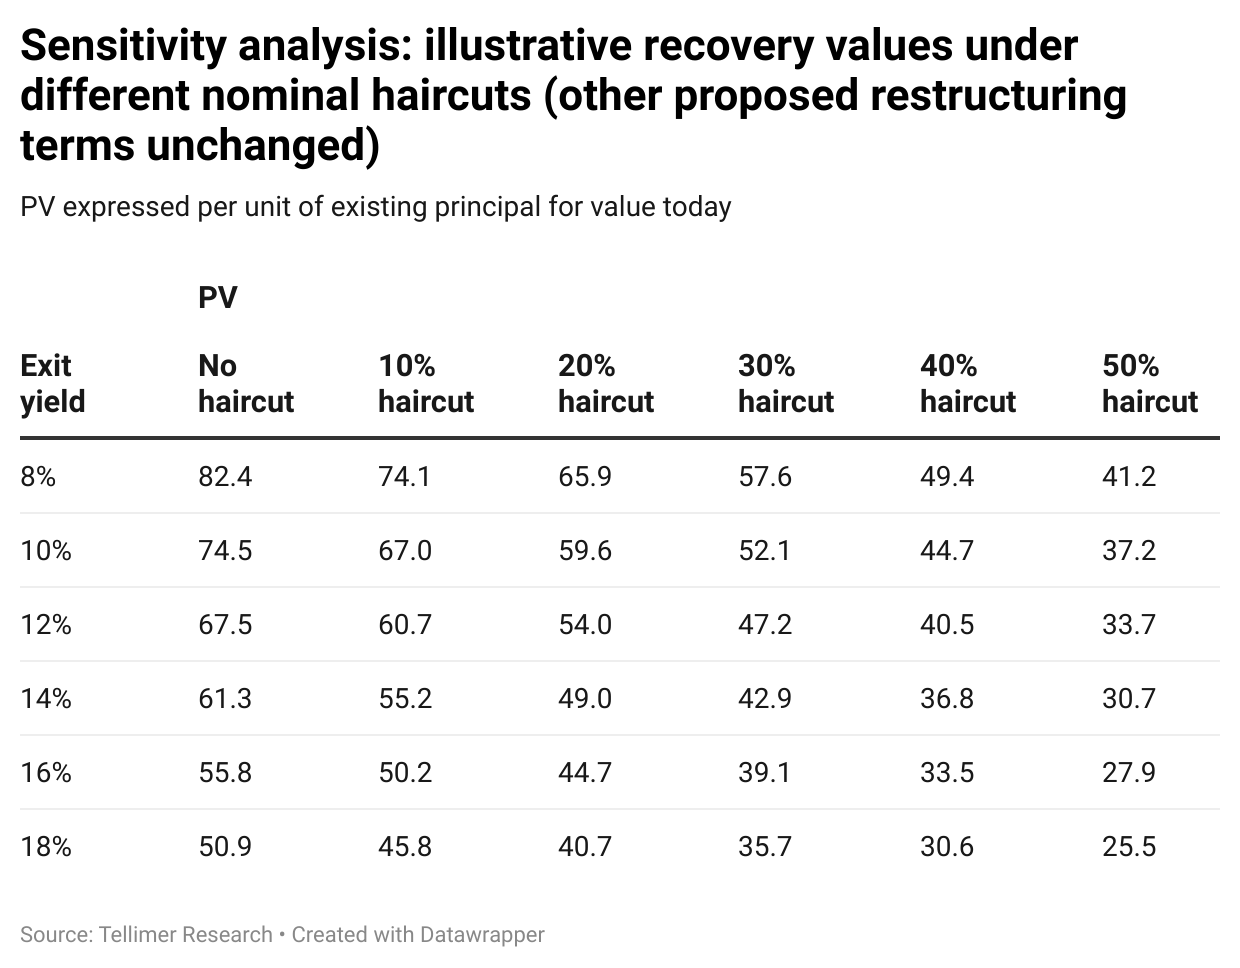 Sensitivity analysis: illustrative recovery values under different nominal haircuts (other proposed restructuring terms unchanged)